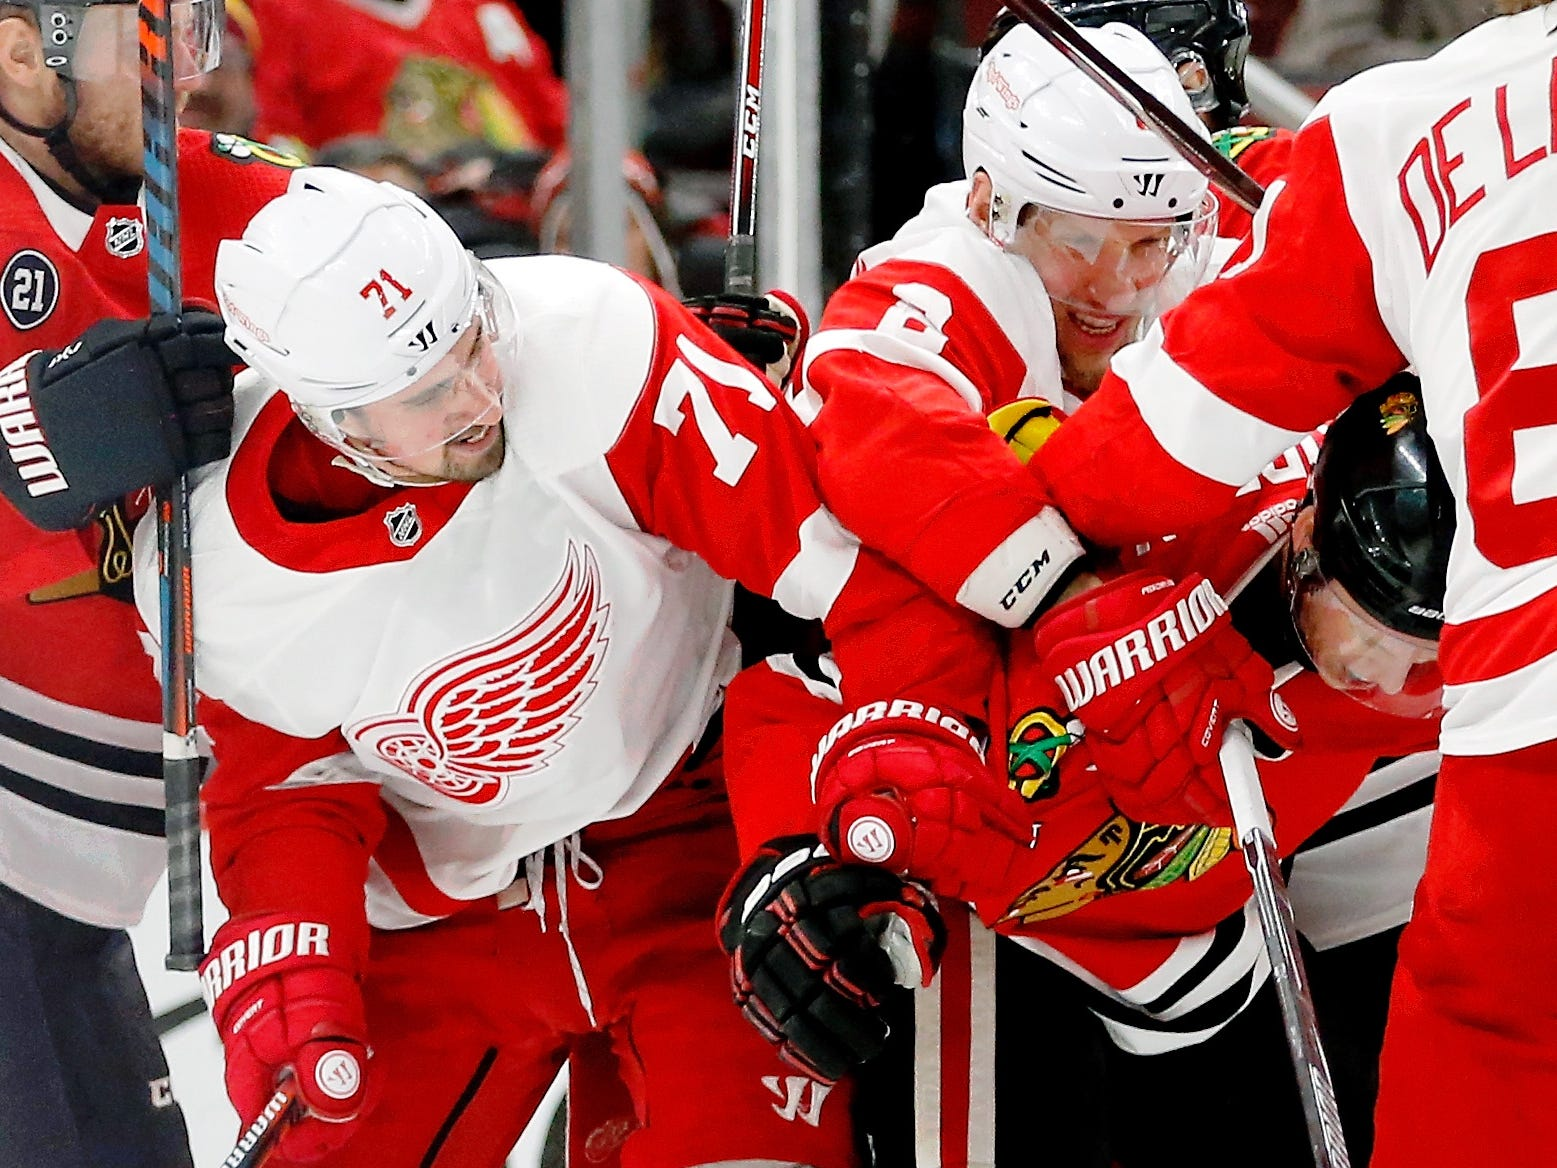 Detroit Red Wings center Dylan Larkin, left, and left wing Justin Abdelkader get in a scuffle with Chicago Blackhawks defenseman Connor Murphy during the second period at United Center on Sunday, Feb. 10, 2019.